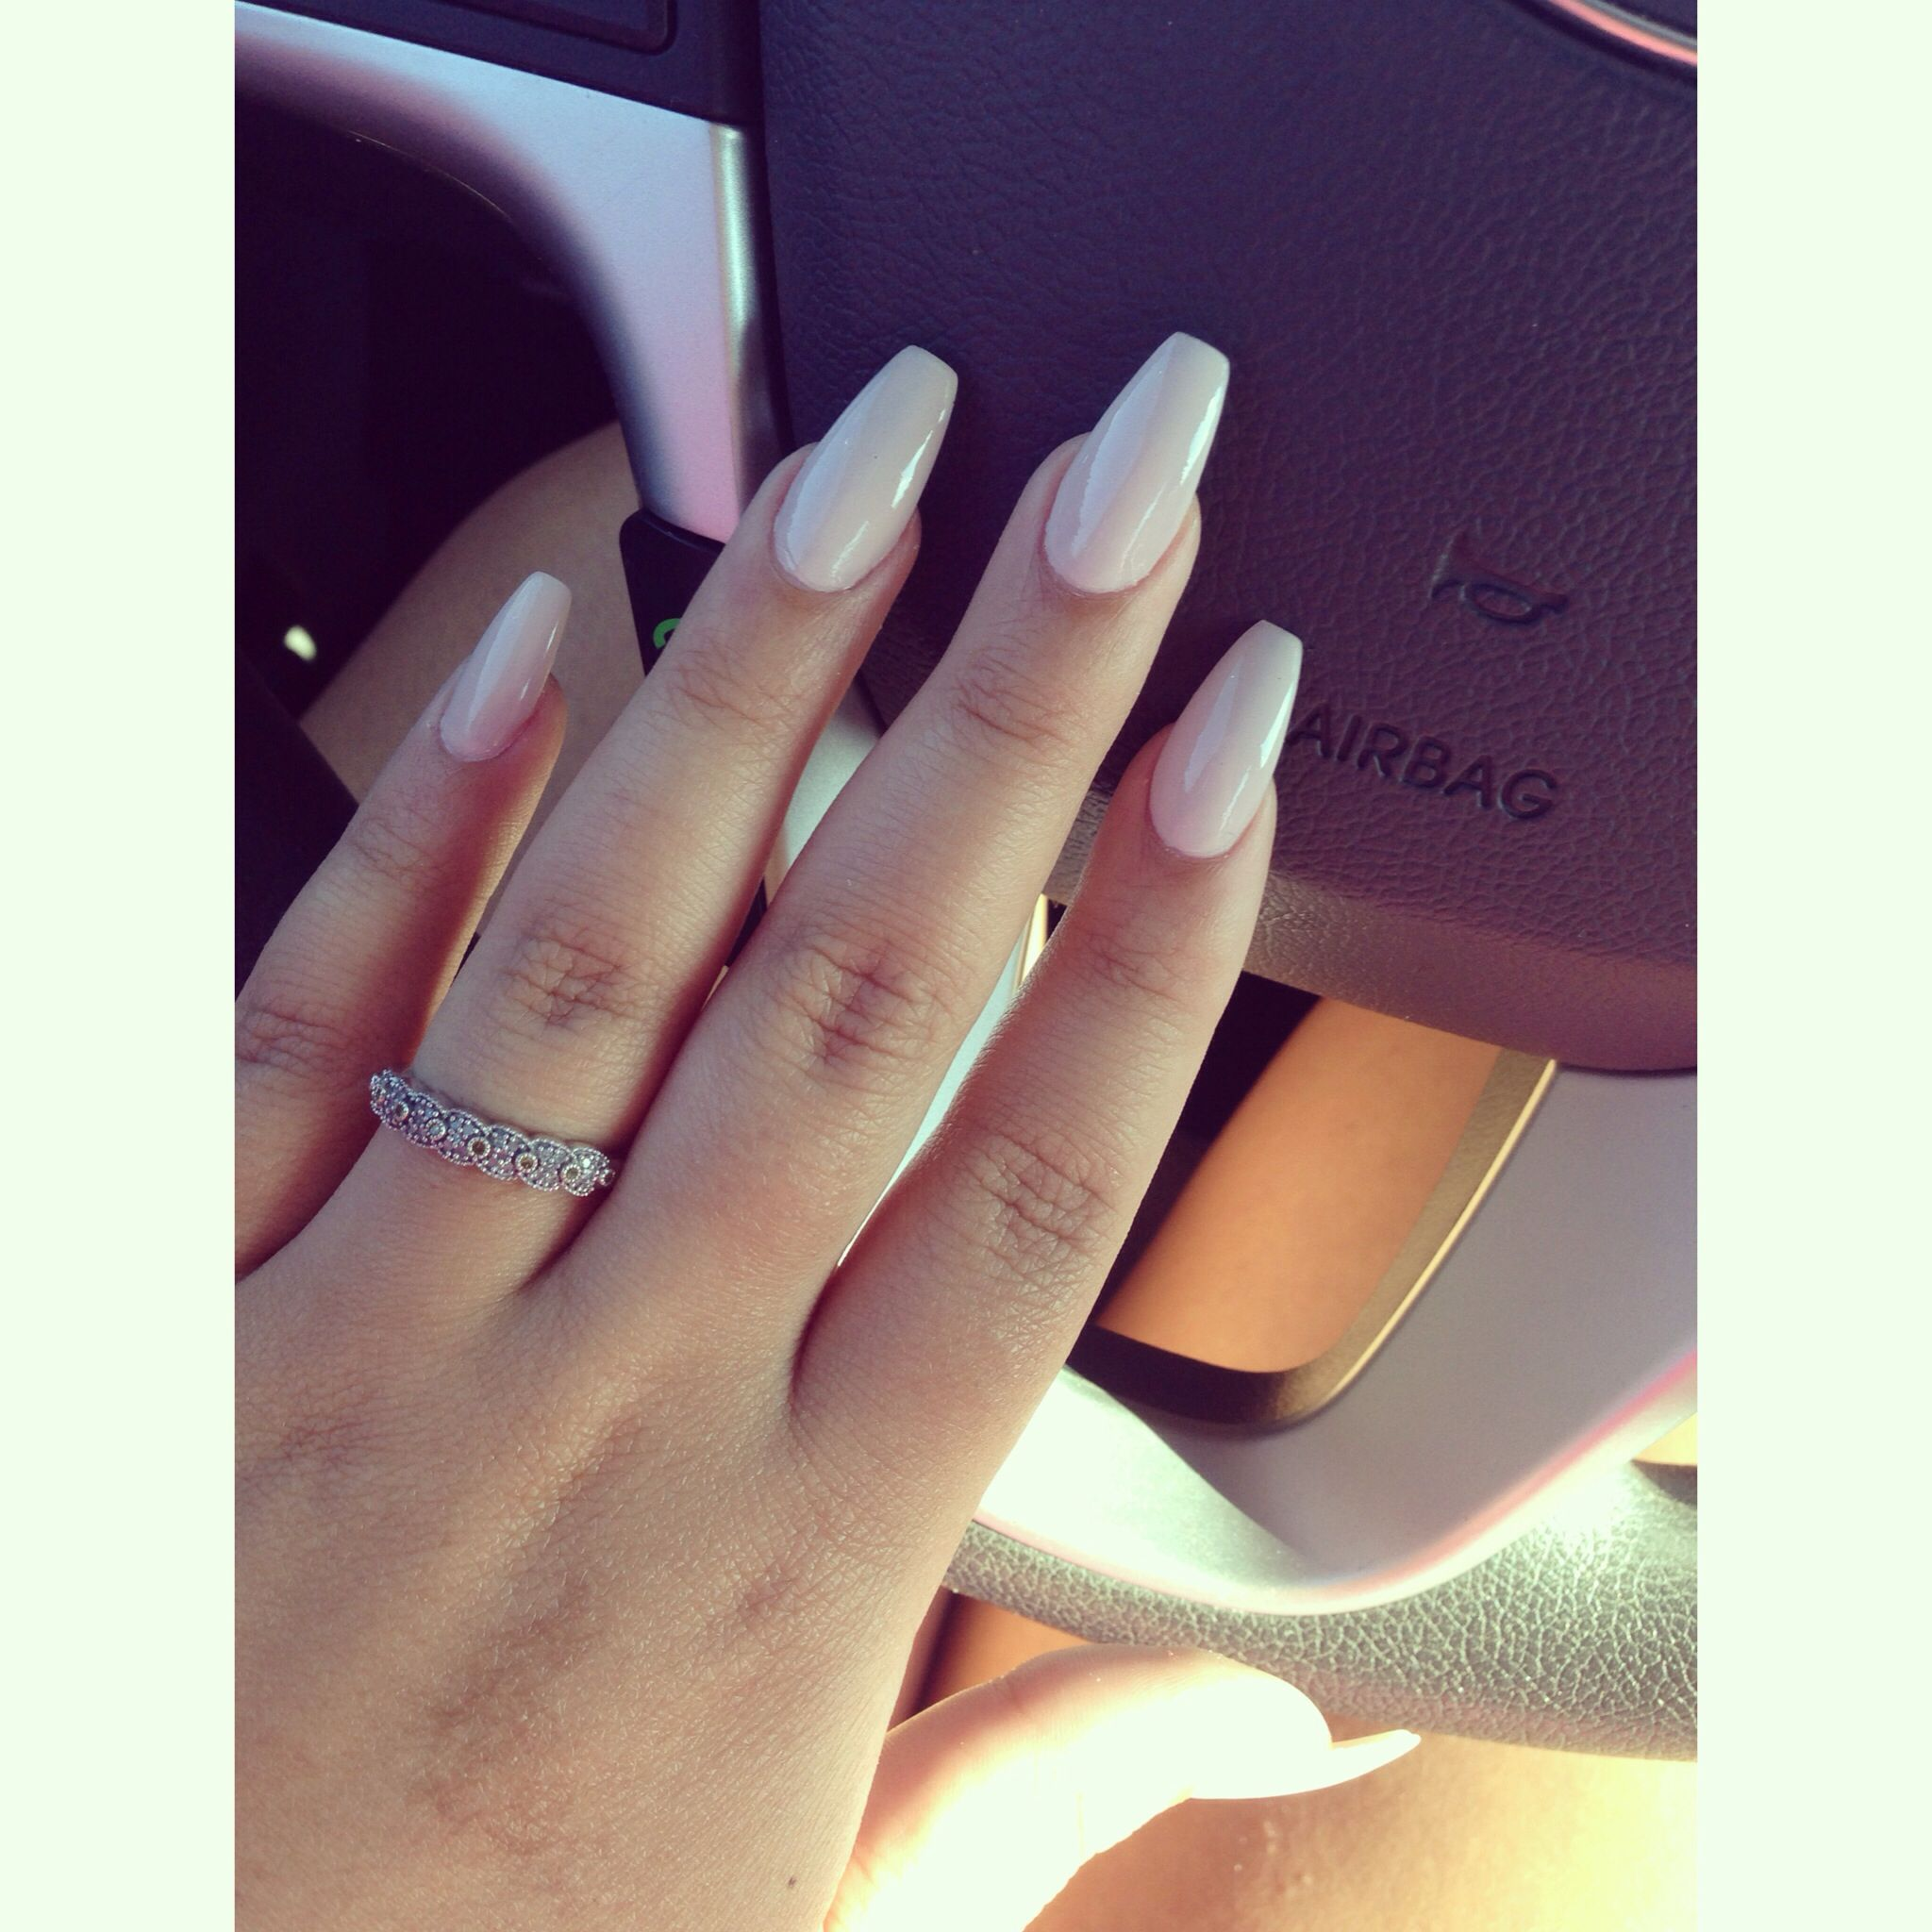 Nude Coffin Nails | Nails | Pinterest | Nageldesign und Nagelschere